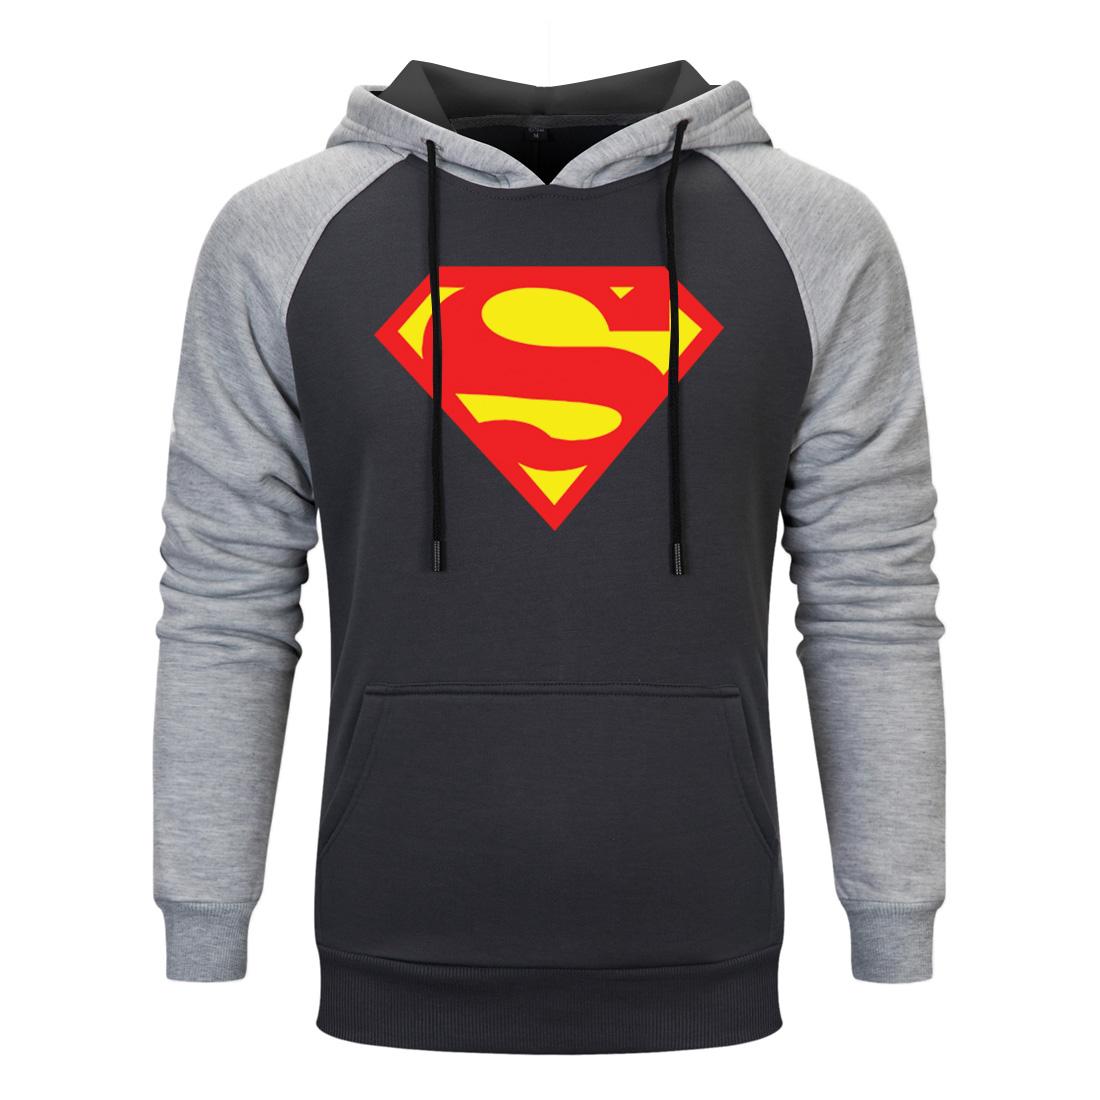 Fashion Autumn Superman Coat Men Super Heroes Hooded Sweatshirt Top Sudadera Hombre Comic Cool Superman Street Clothing